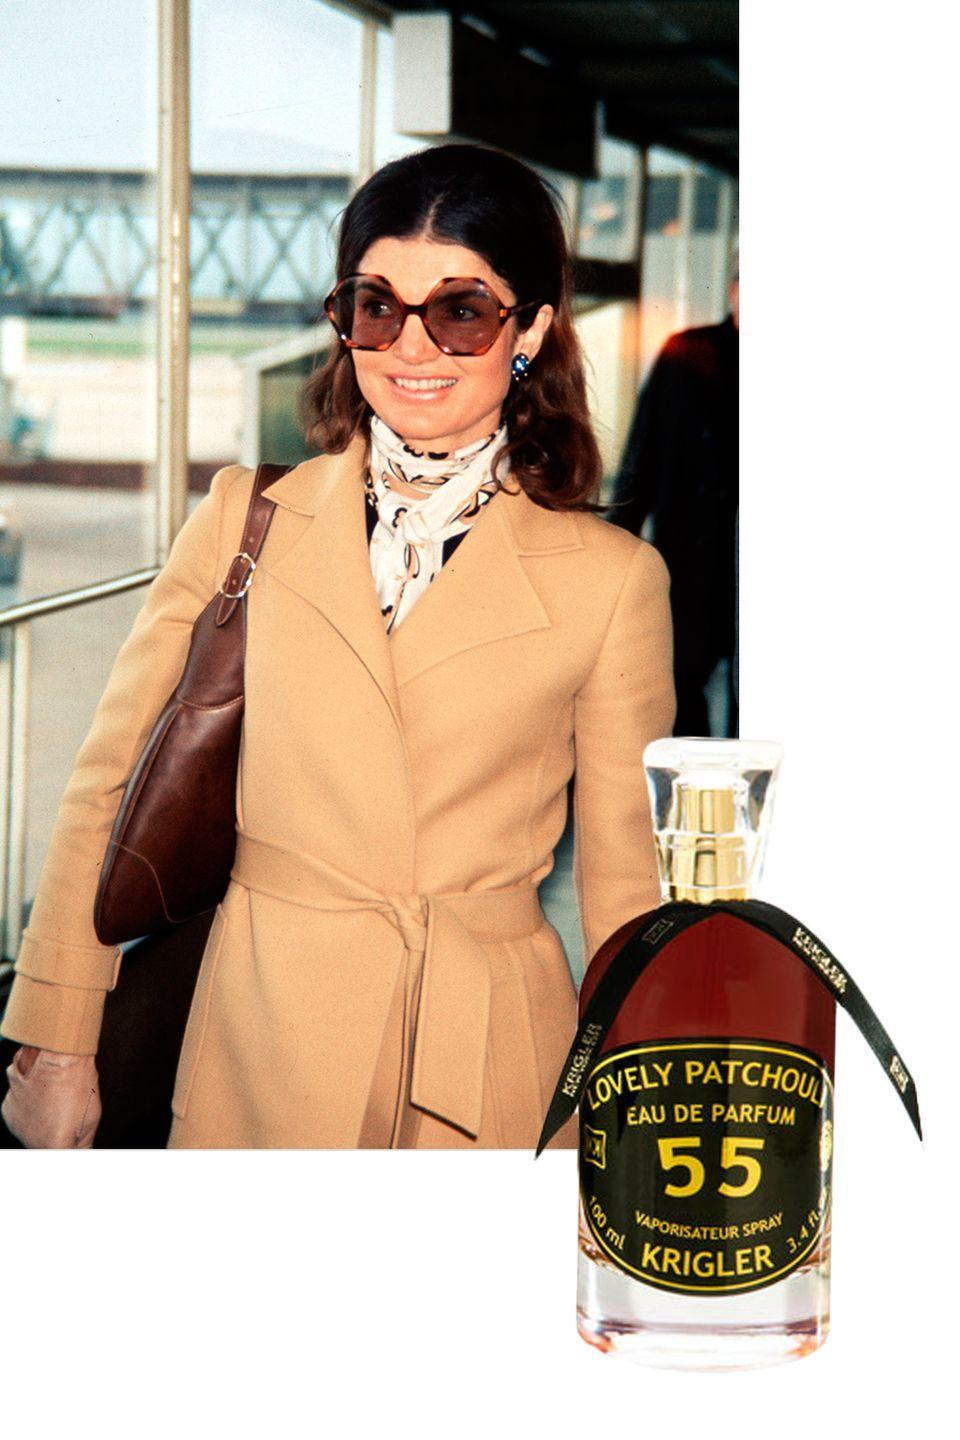 "<p><span>Kennedy's preferred fragrance, <a href=""http://www.byrdie.co.uk/jackie-kennedy-perfume-lovely-patchouli-55"" rel=""nofollow noopener"" target=""_blank"" data-ylk=""slk:which she wore daily"" class=""link rapid-noclick-resp"">which she wore daily</a>, came from House of Krigler, a luxury French perfumery founded in 1879. ""</span><span><a href=""https://www.krigler.com/usa-world/fragrances/"" rel=""nofollow noopener"" target=""_blank"" data-ylk=""slk:Lovely Patchouli 55"" class=""link rapid-noclick-resp"">Lovely Patchouli 55</a></span><span>,"" a sensuous perfume with notes of amber, bergamot, patchouli, and leather, was her scent of choice.</span></p><p><a class=""link rapid-noclick-resp"" href=""https://www.krigler.com/usa/fragrances/fragrances-presentations/#cc-m-product-6425335364"" rel=""nofollow noopener"" target=""_blank"" data-ylk=""slk:SHOP NOW"">SHOP NOW</a> <em>Krigler Lovely Patchouli 55 Classic, $365</em></p>"